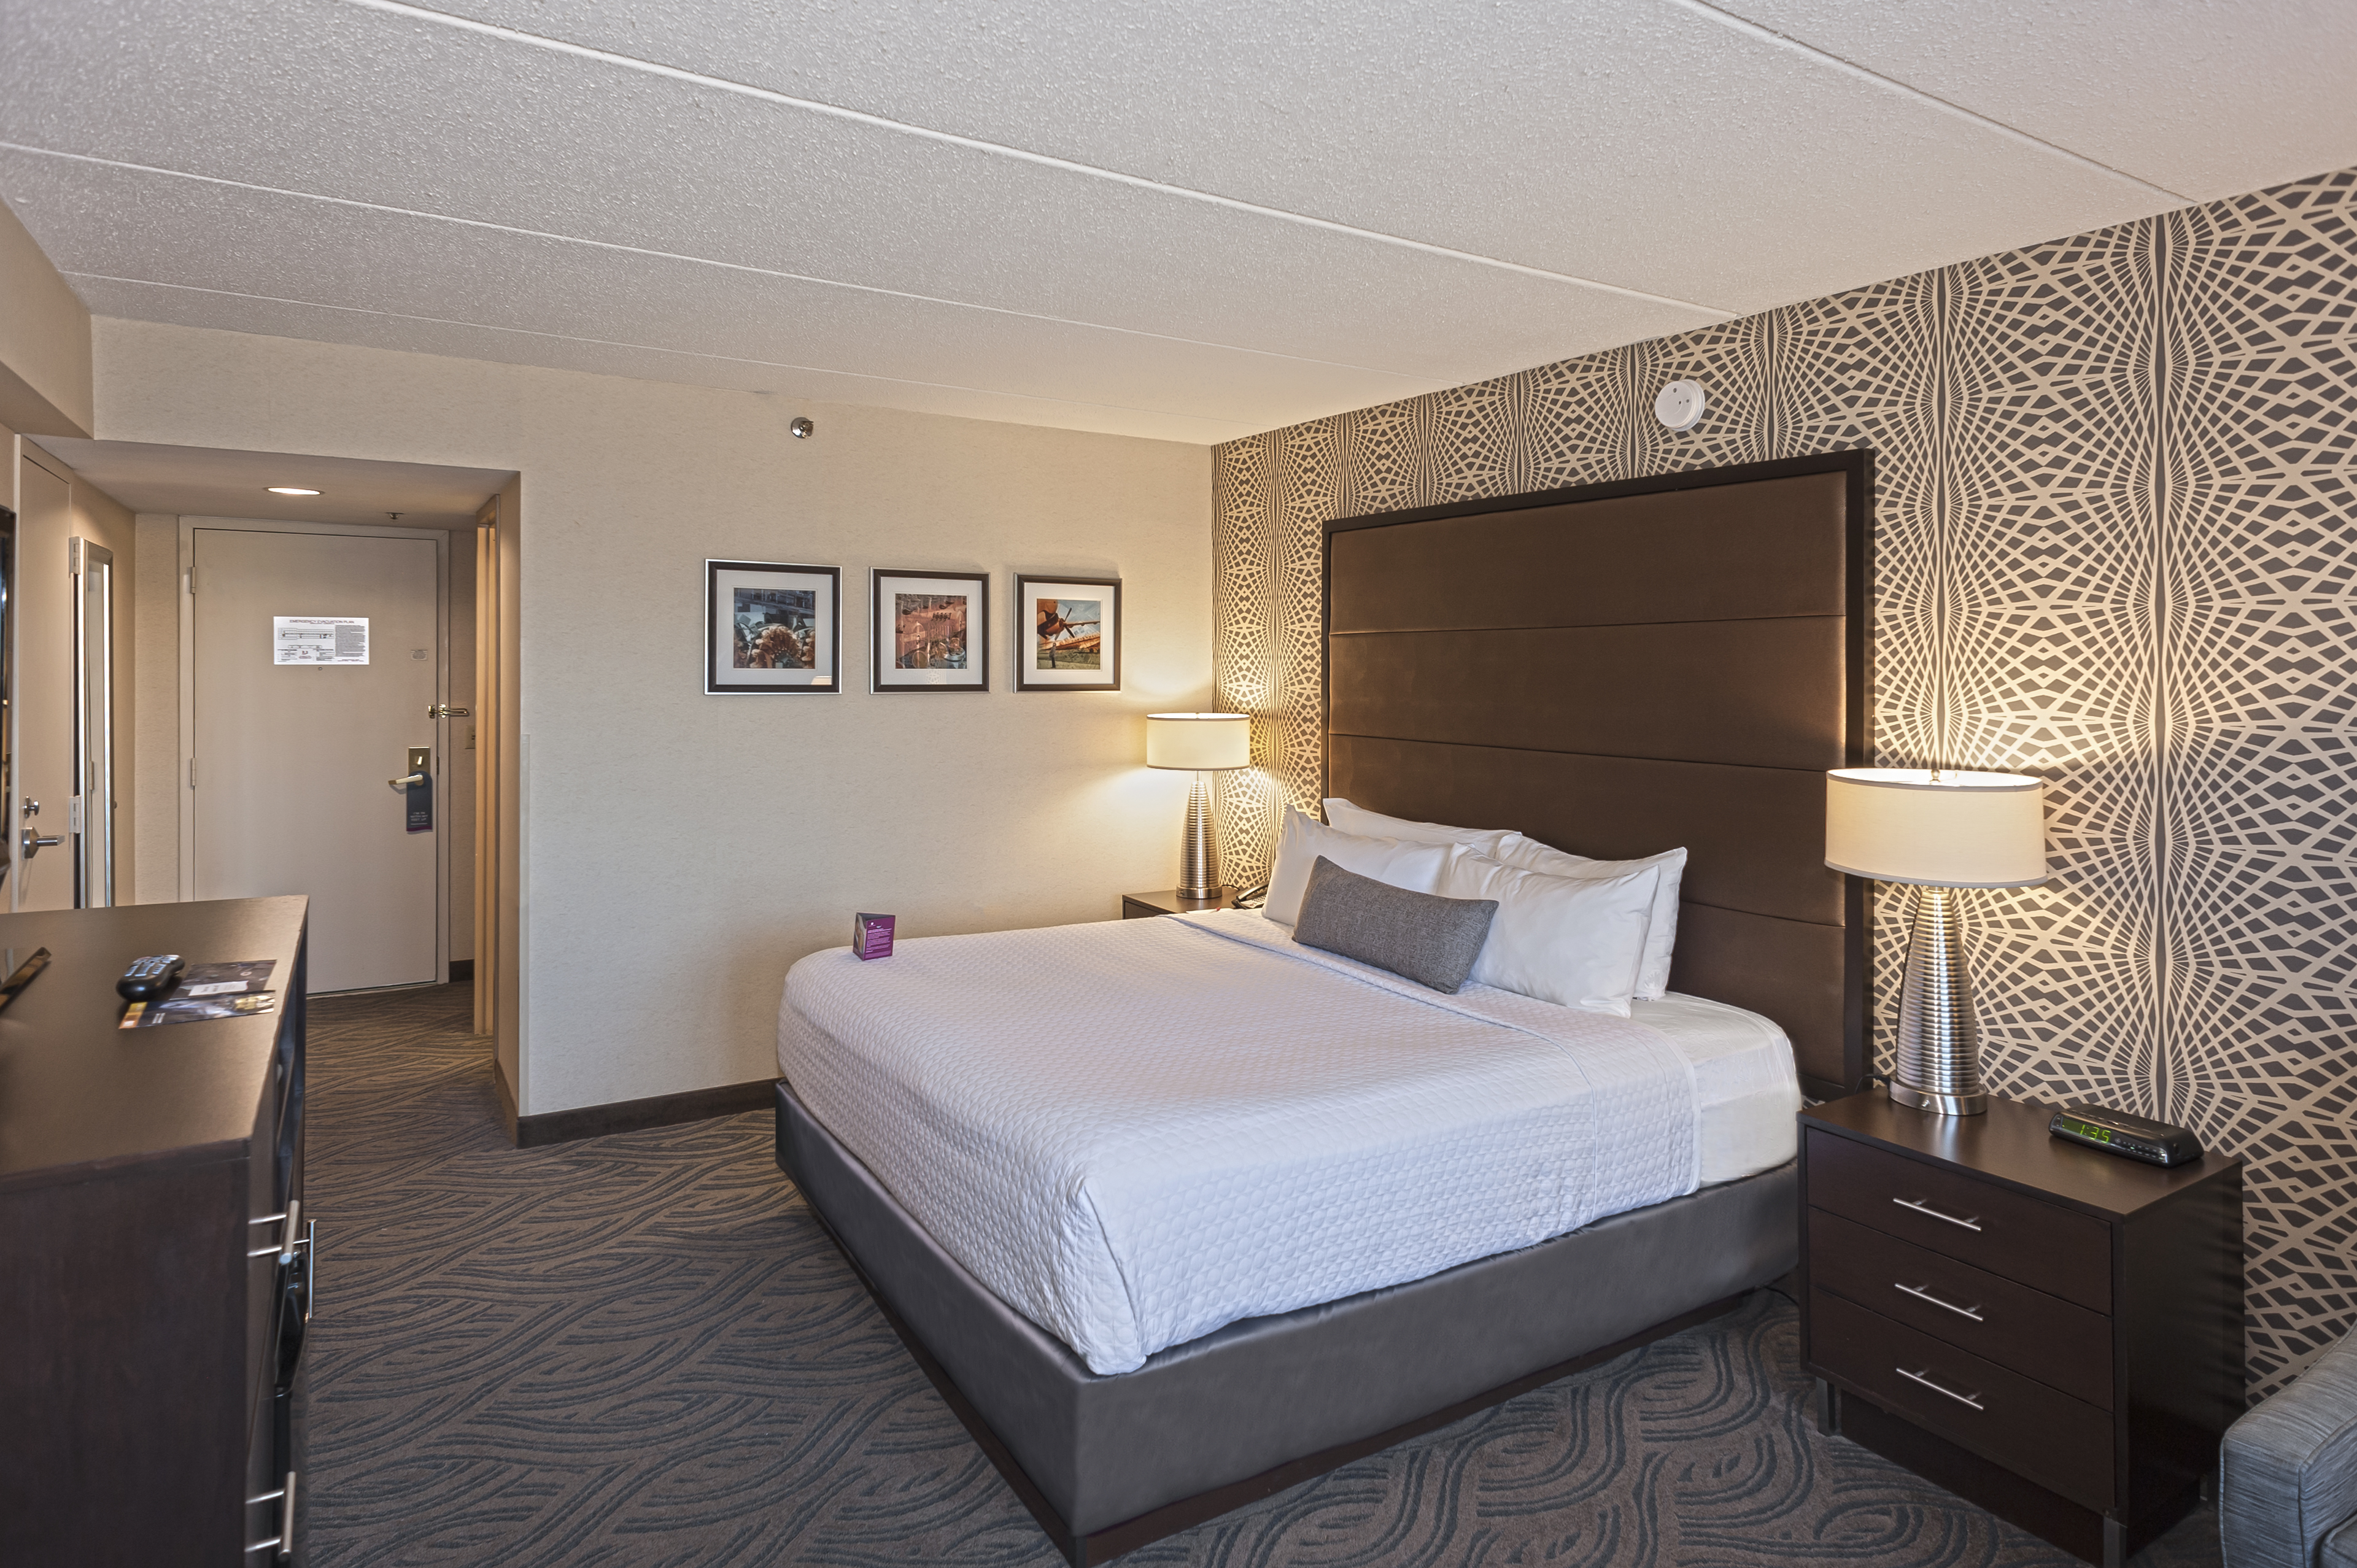 clsc america guest hor mspjw mn marriott near jw hotel minneapolis themed of mall rooms travel room hotels queen